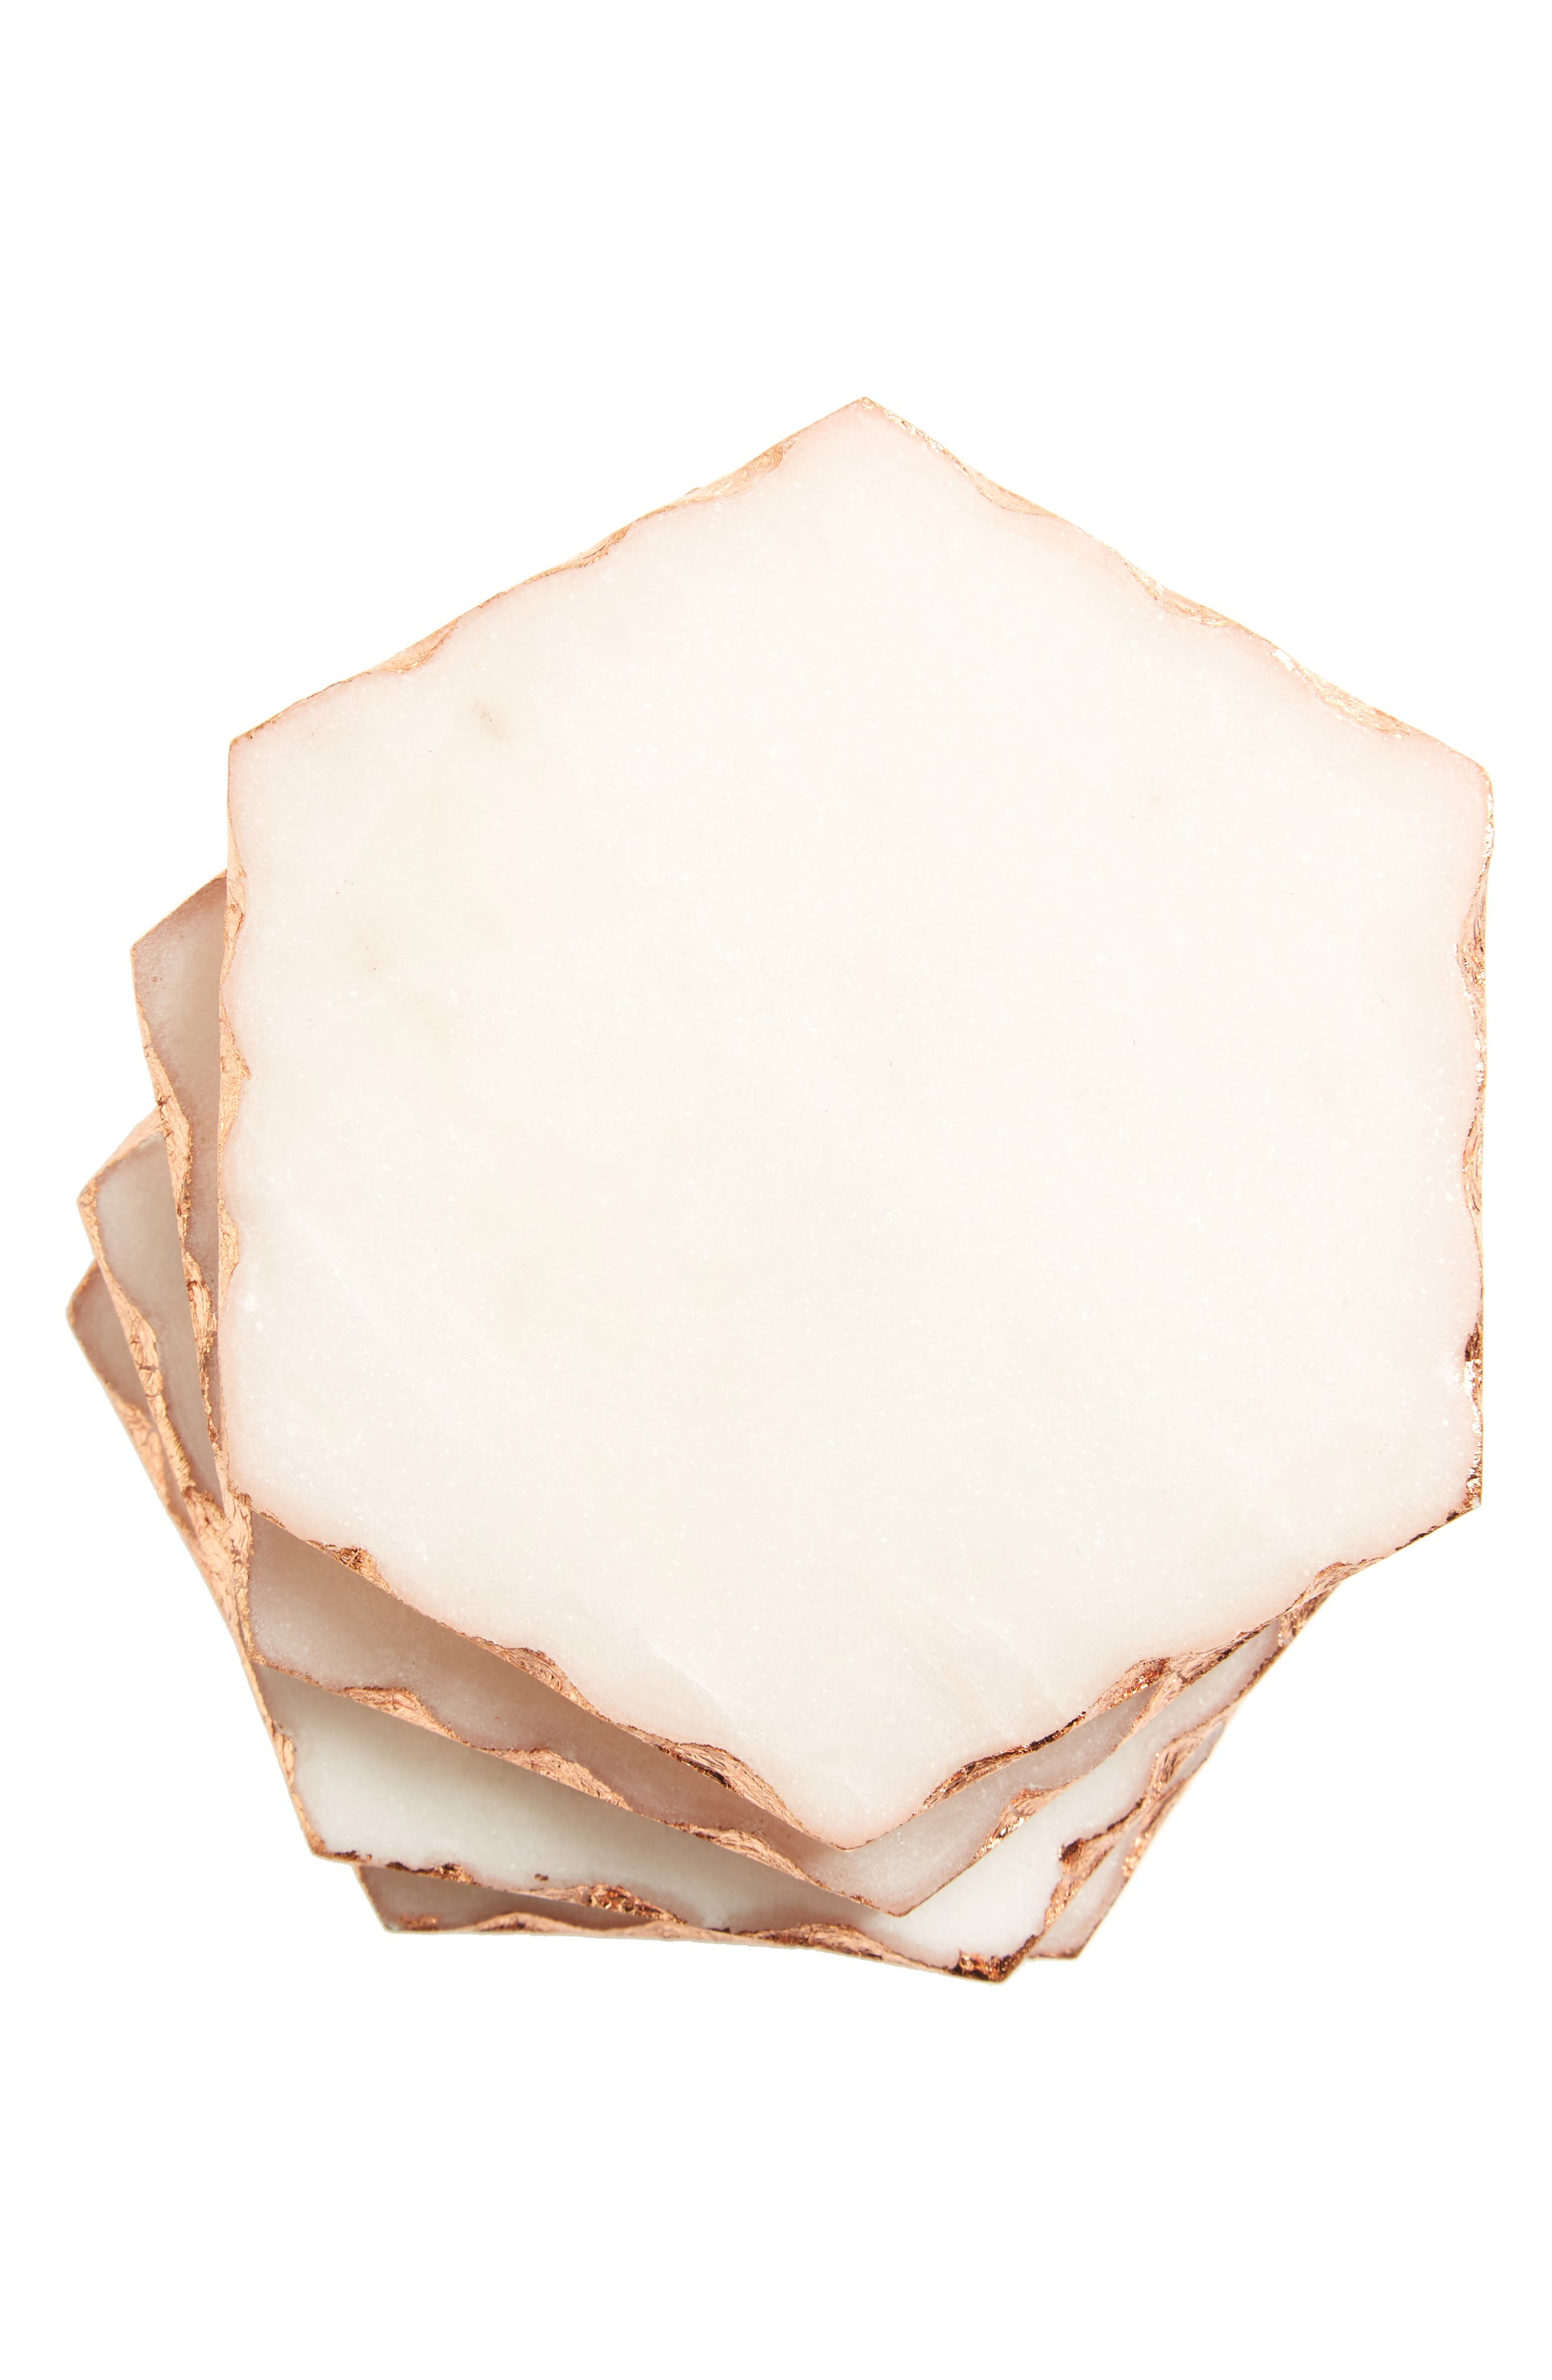 Hexagon Set of 4 Marble Coasters,                         Main,                         color, White/ Copper